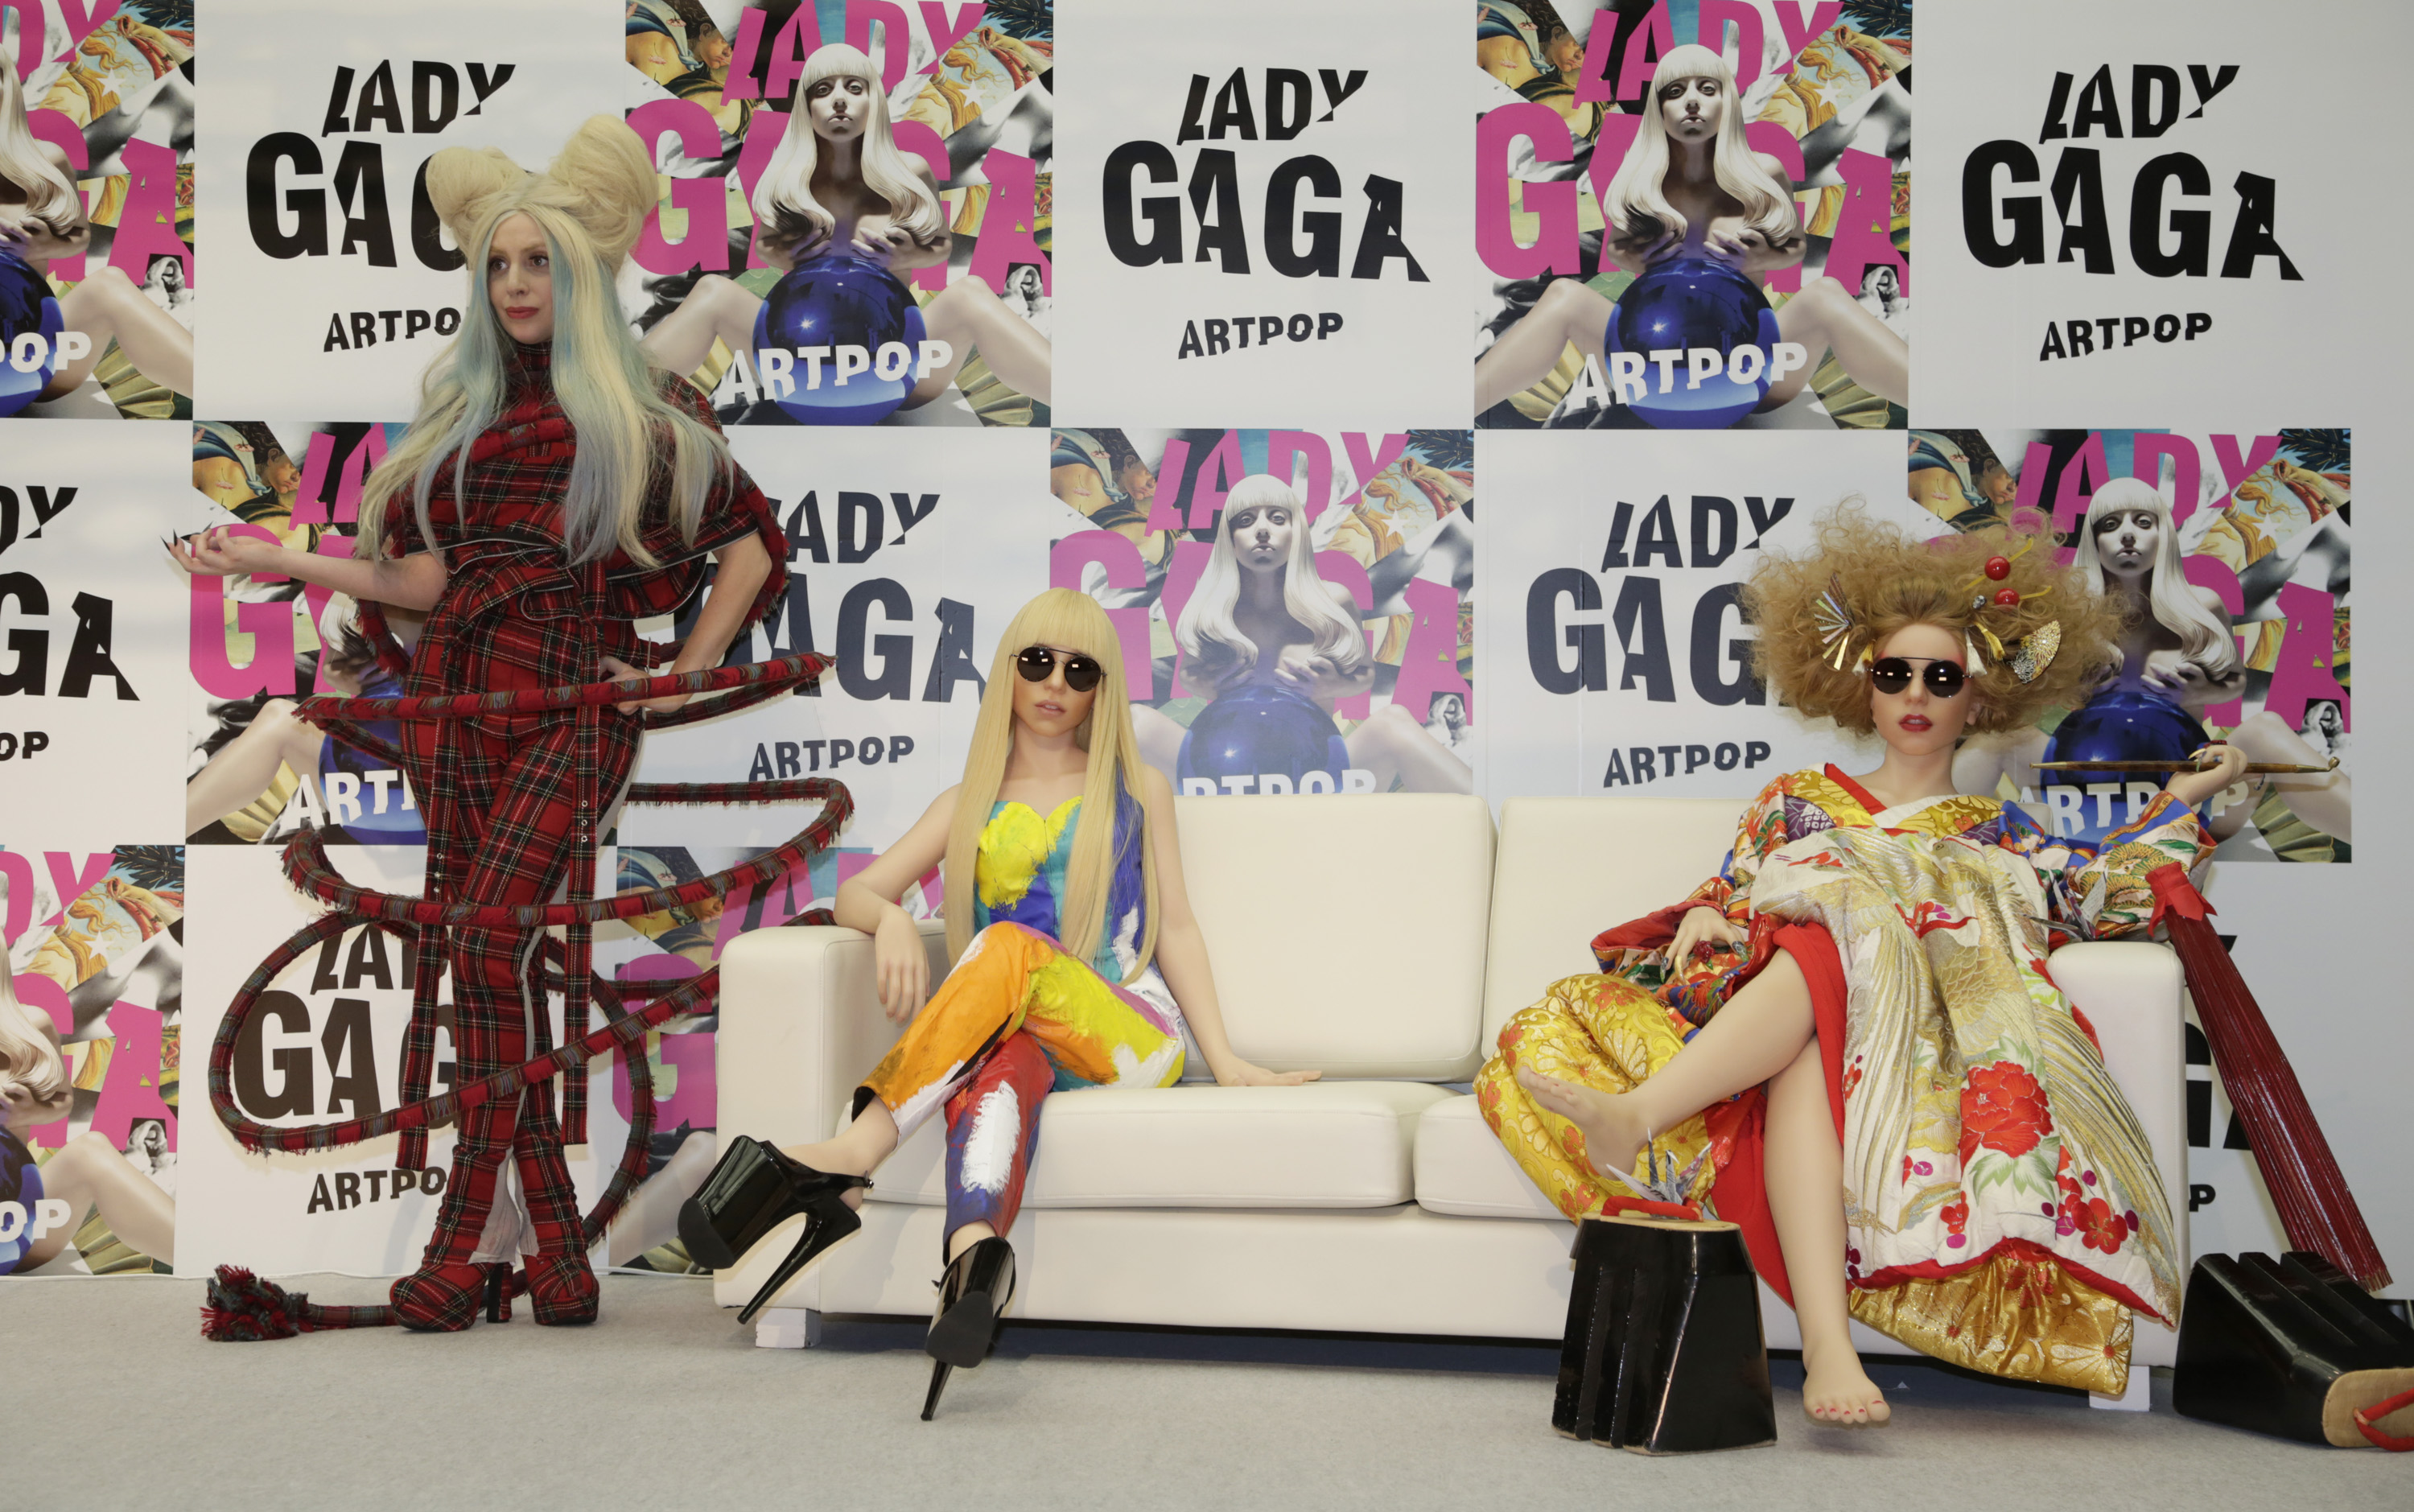 Lady Gaga poses for photographers with her life-sized dolls during a press conference to promote her album 'ARTPOP' in Tokyo,